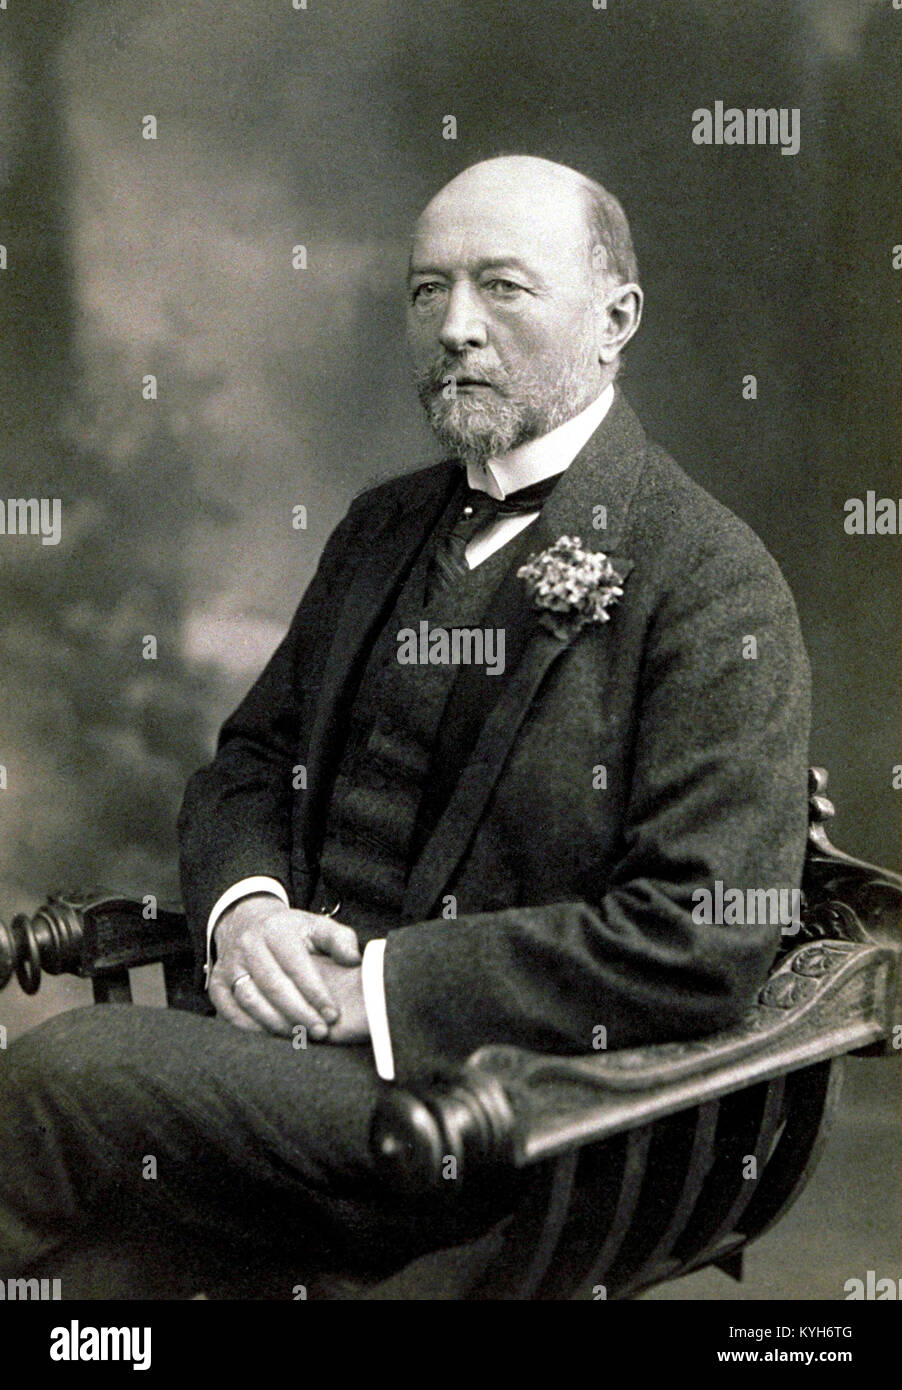 Emil von Behring, German physiologist who received the 1901 Nobel Prize in Physiology or Medicine, - Stock Image